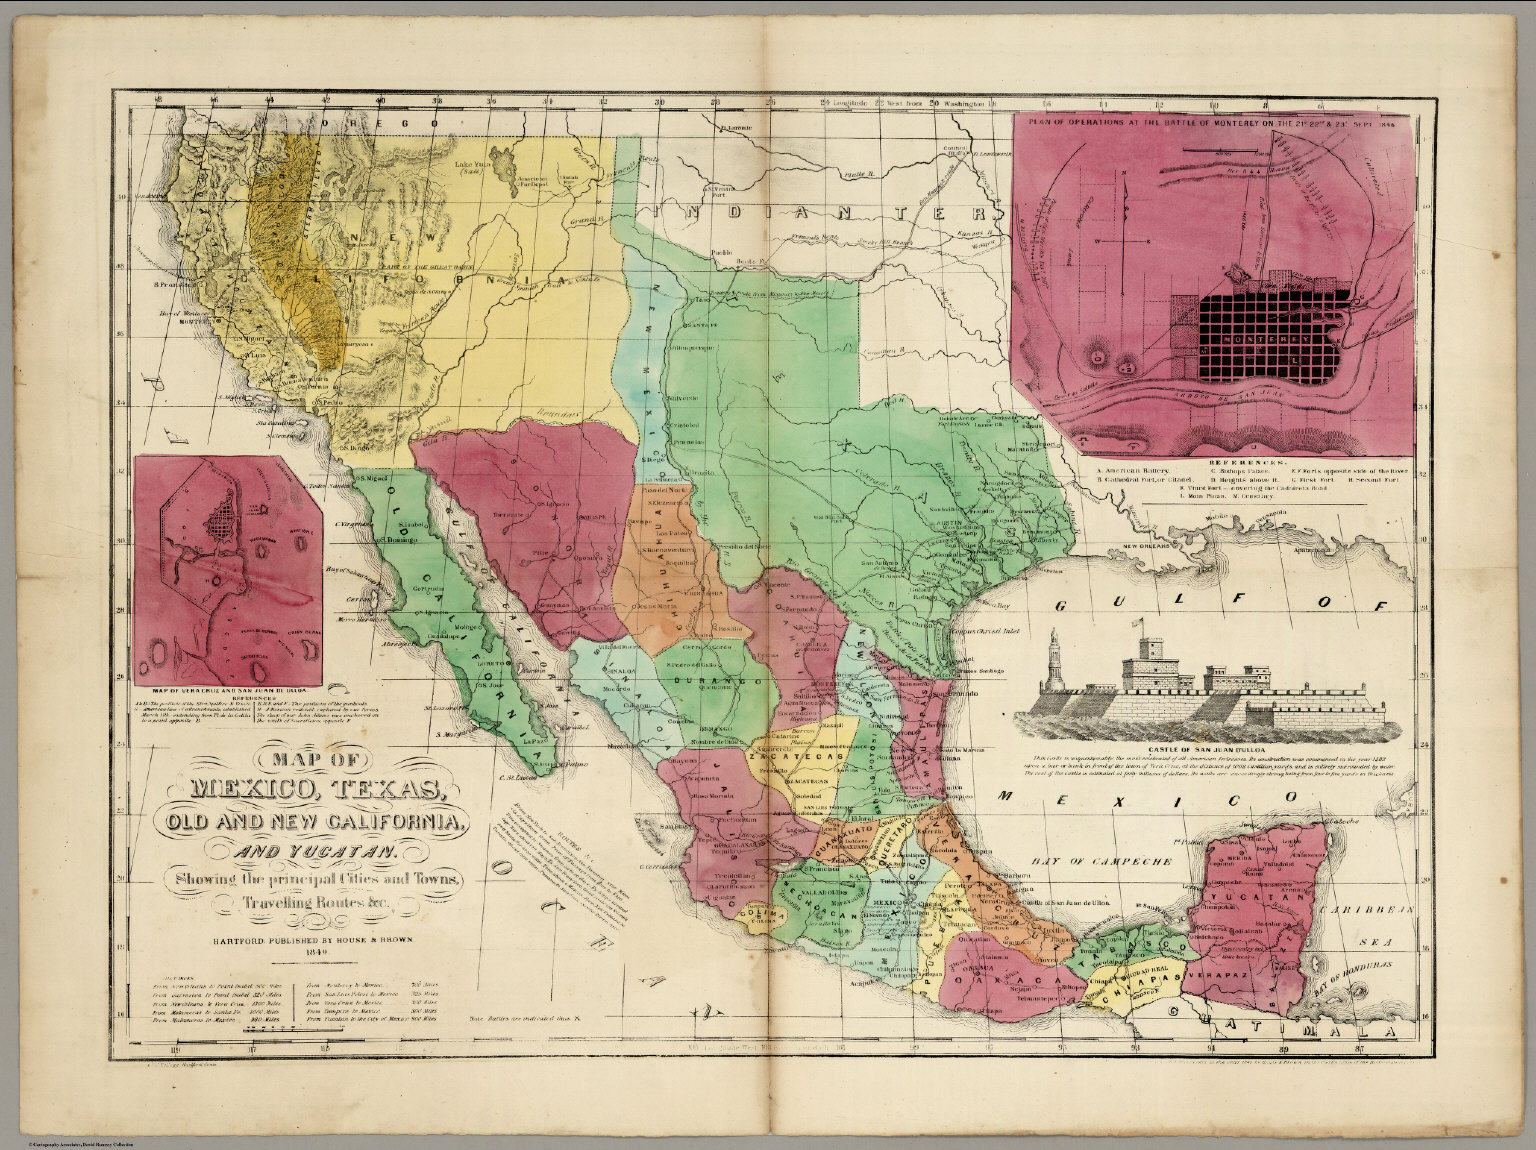 Map Of Texas Mexico.Map Of Mexico Texas Old And New California And Yucatan David